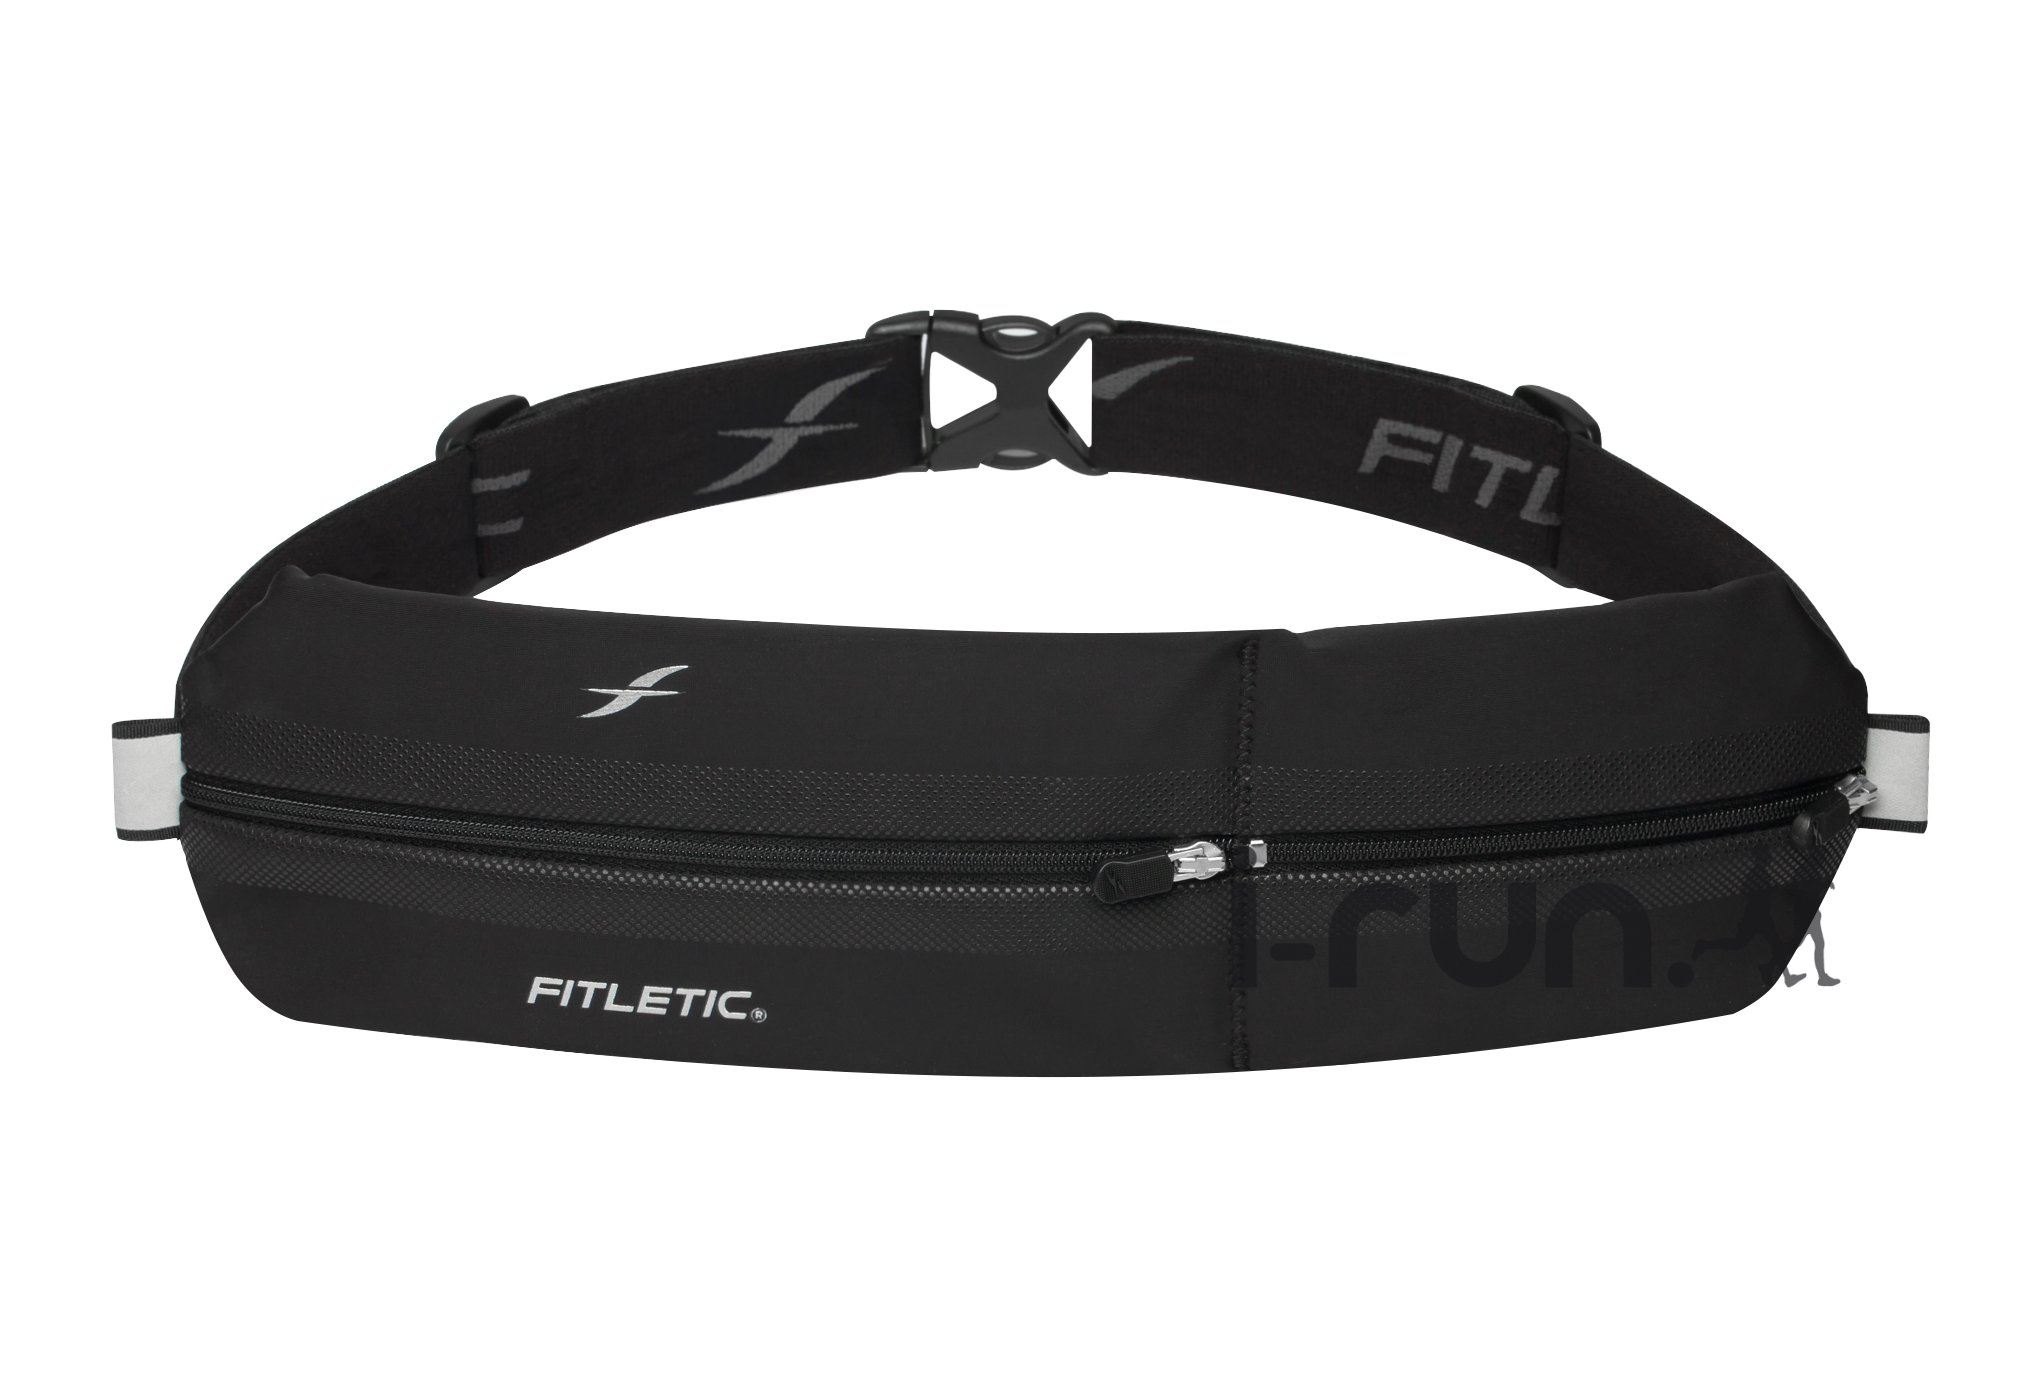 Fitletic Bolt Runners Pouch Ceinture / porte dossard